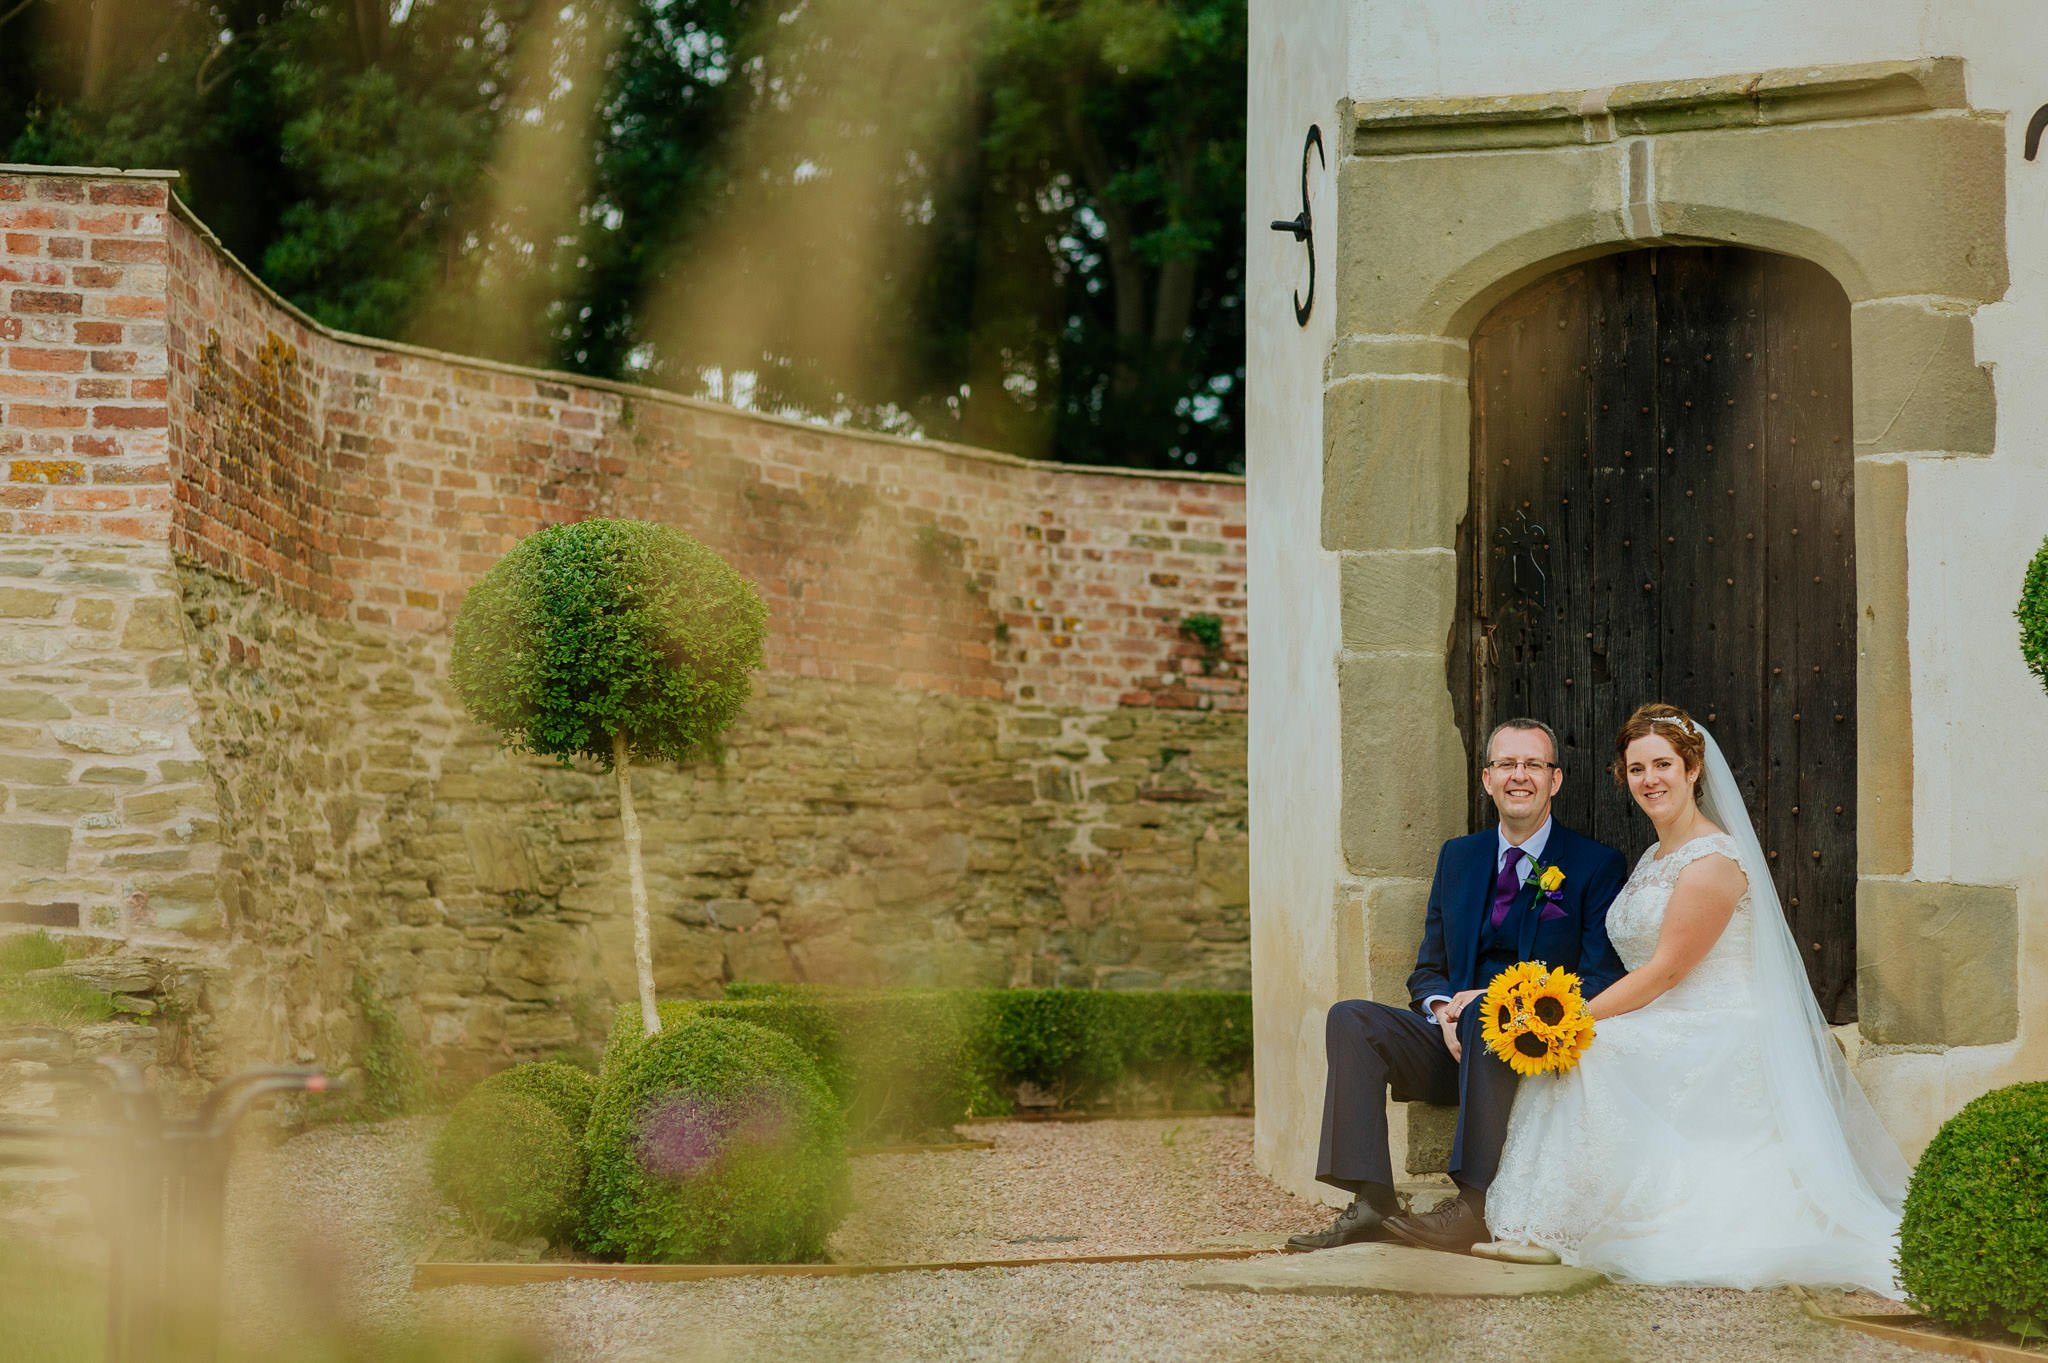 Wedding photography at Homme House in Herefordshire, West Midlands 61